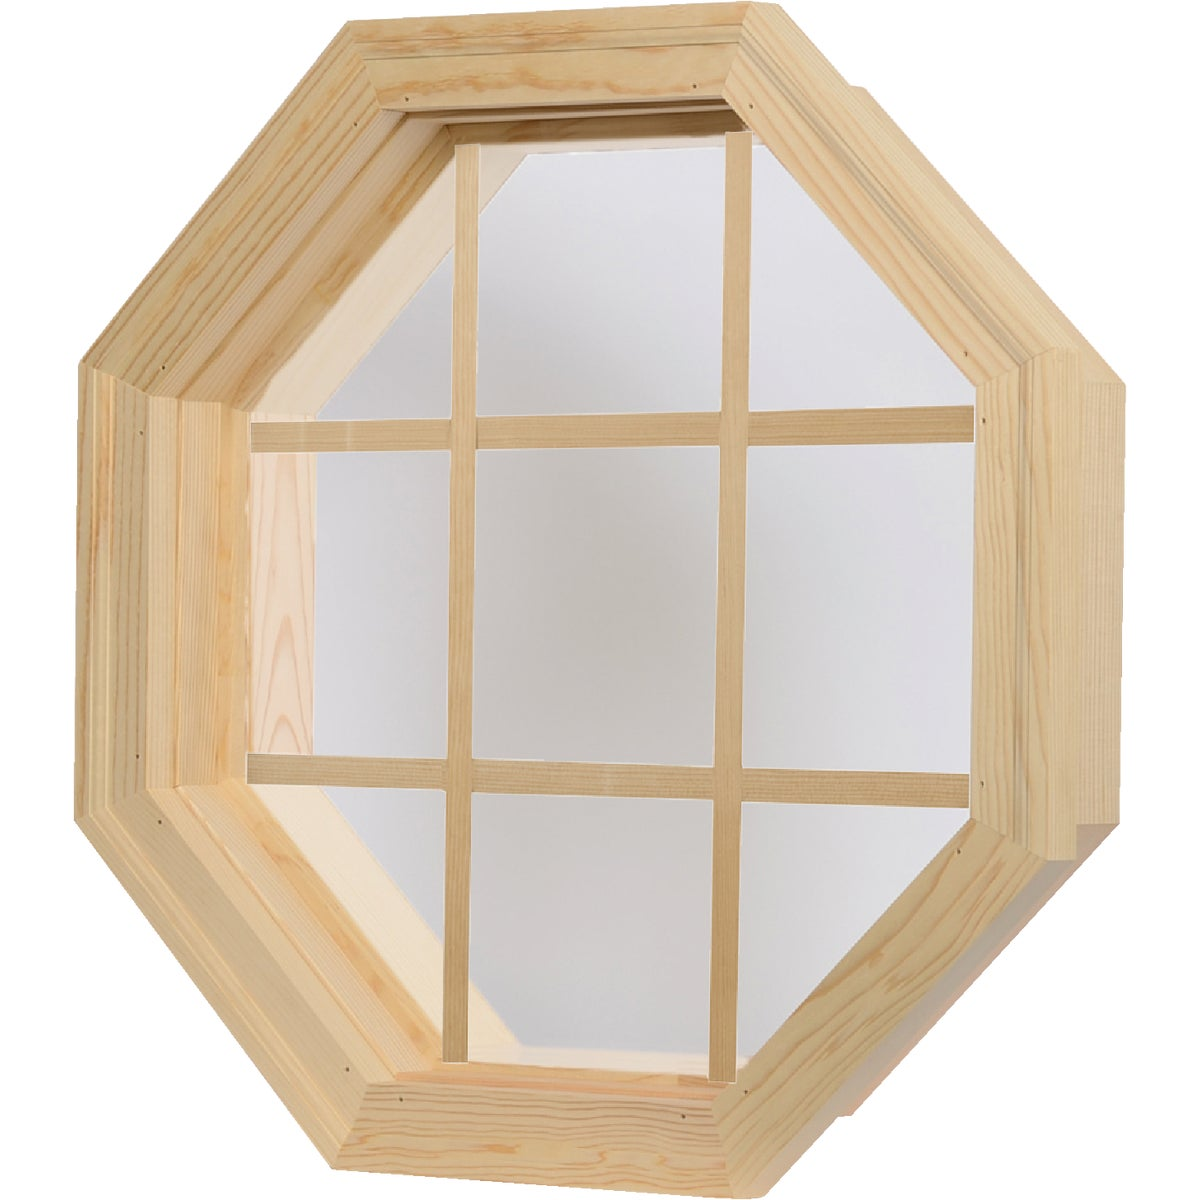 WD OCTAGON SINGLE WINDOW - 11105 by Century Speci Window